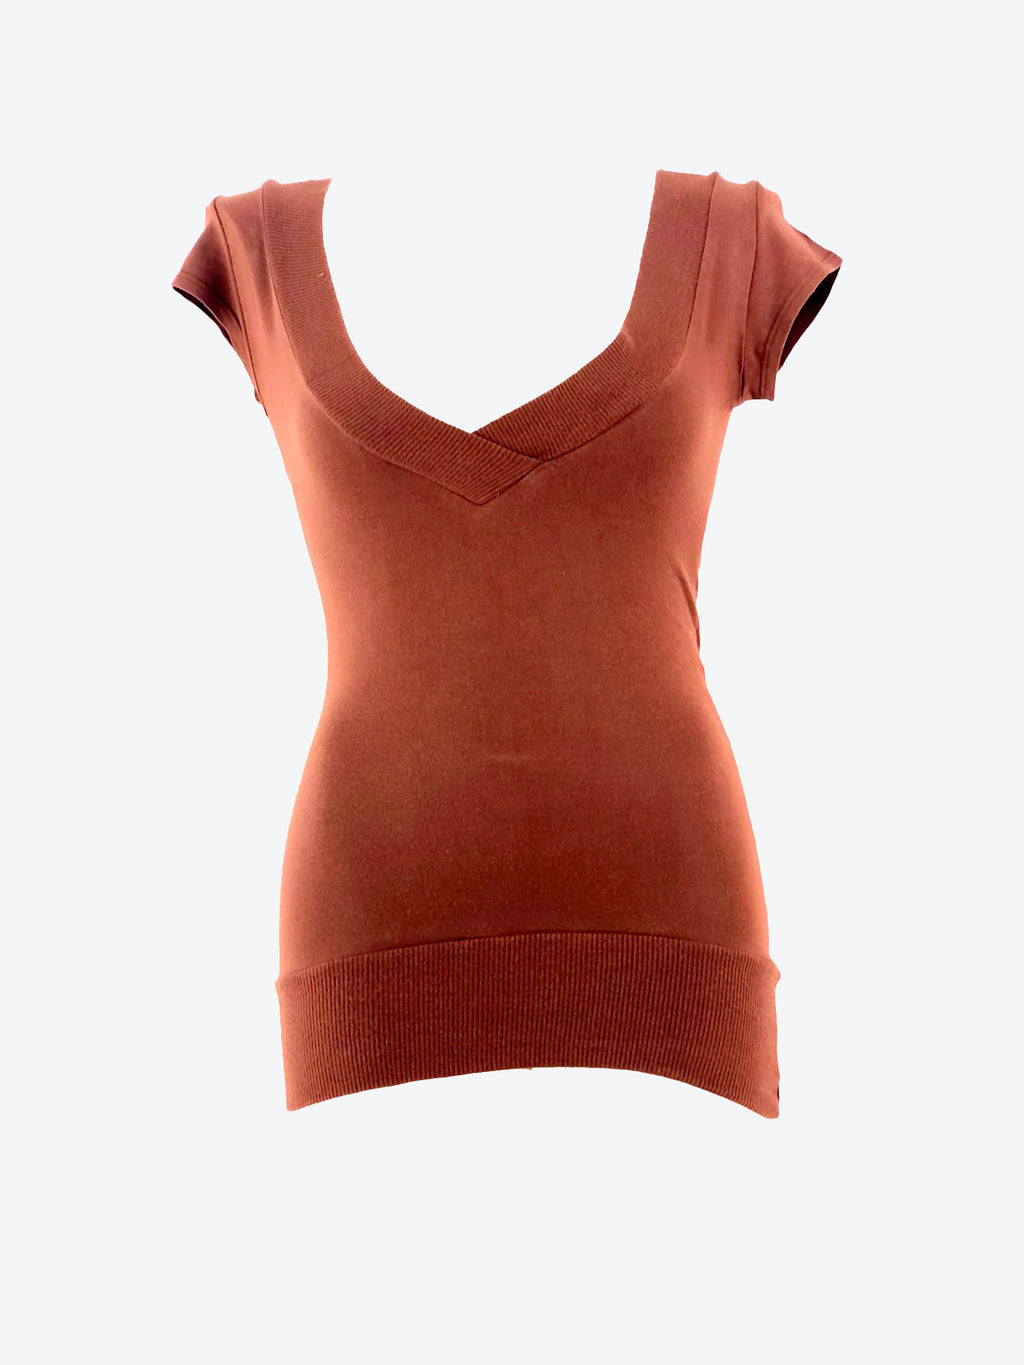 Top manches courtes Femme d'occasion JENNYFER - Taille : 36 - S